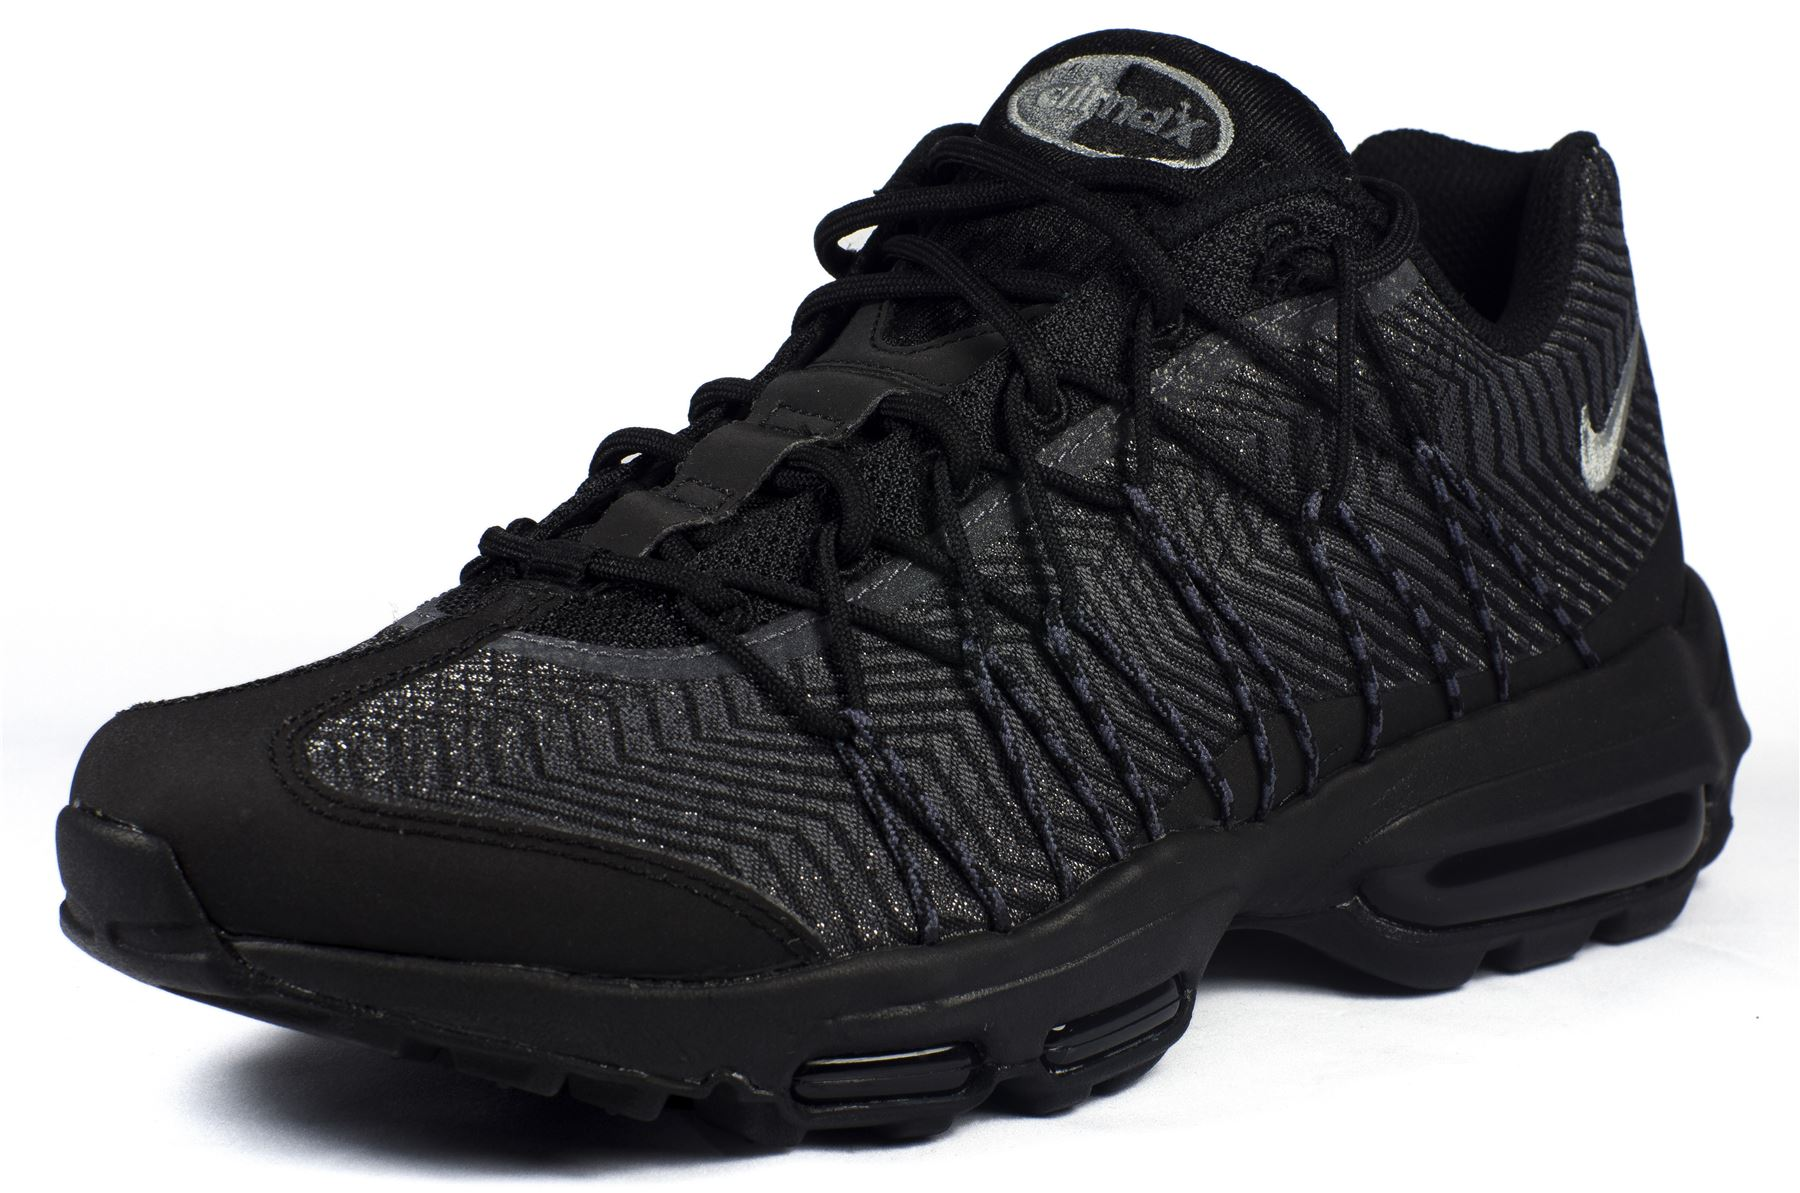 nike air max 95 ultra jacquard in black dark grey silver 749771 001. Black Bedroom Furniture Sets. Home Design Ideas